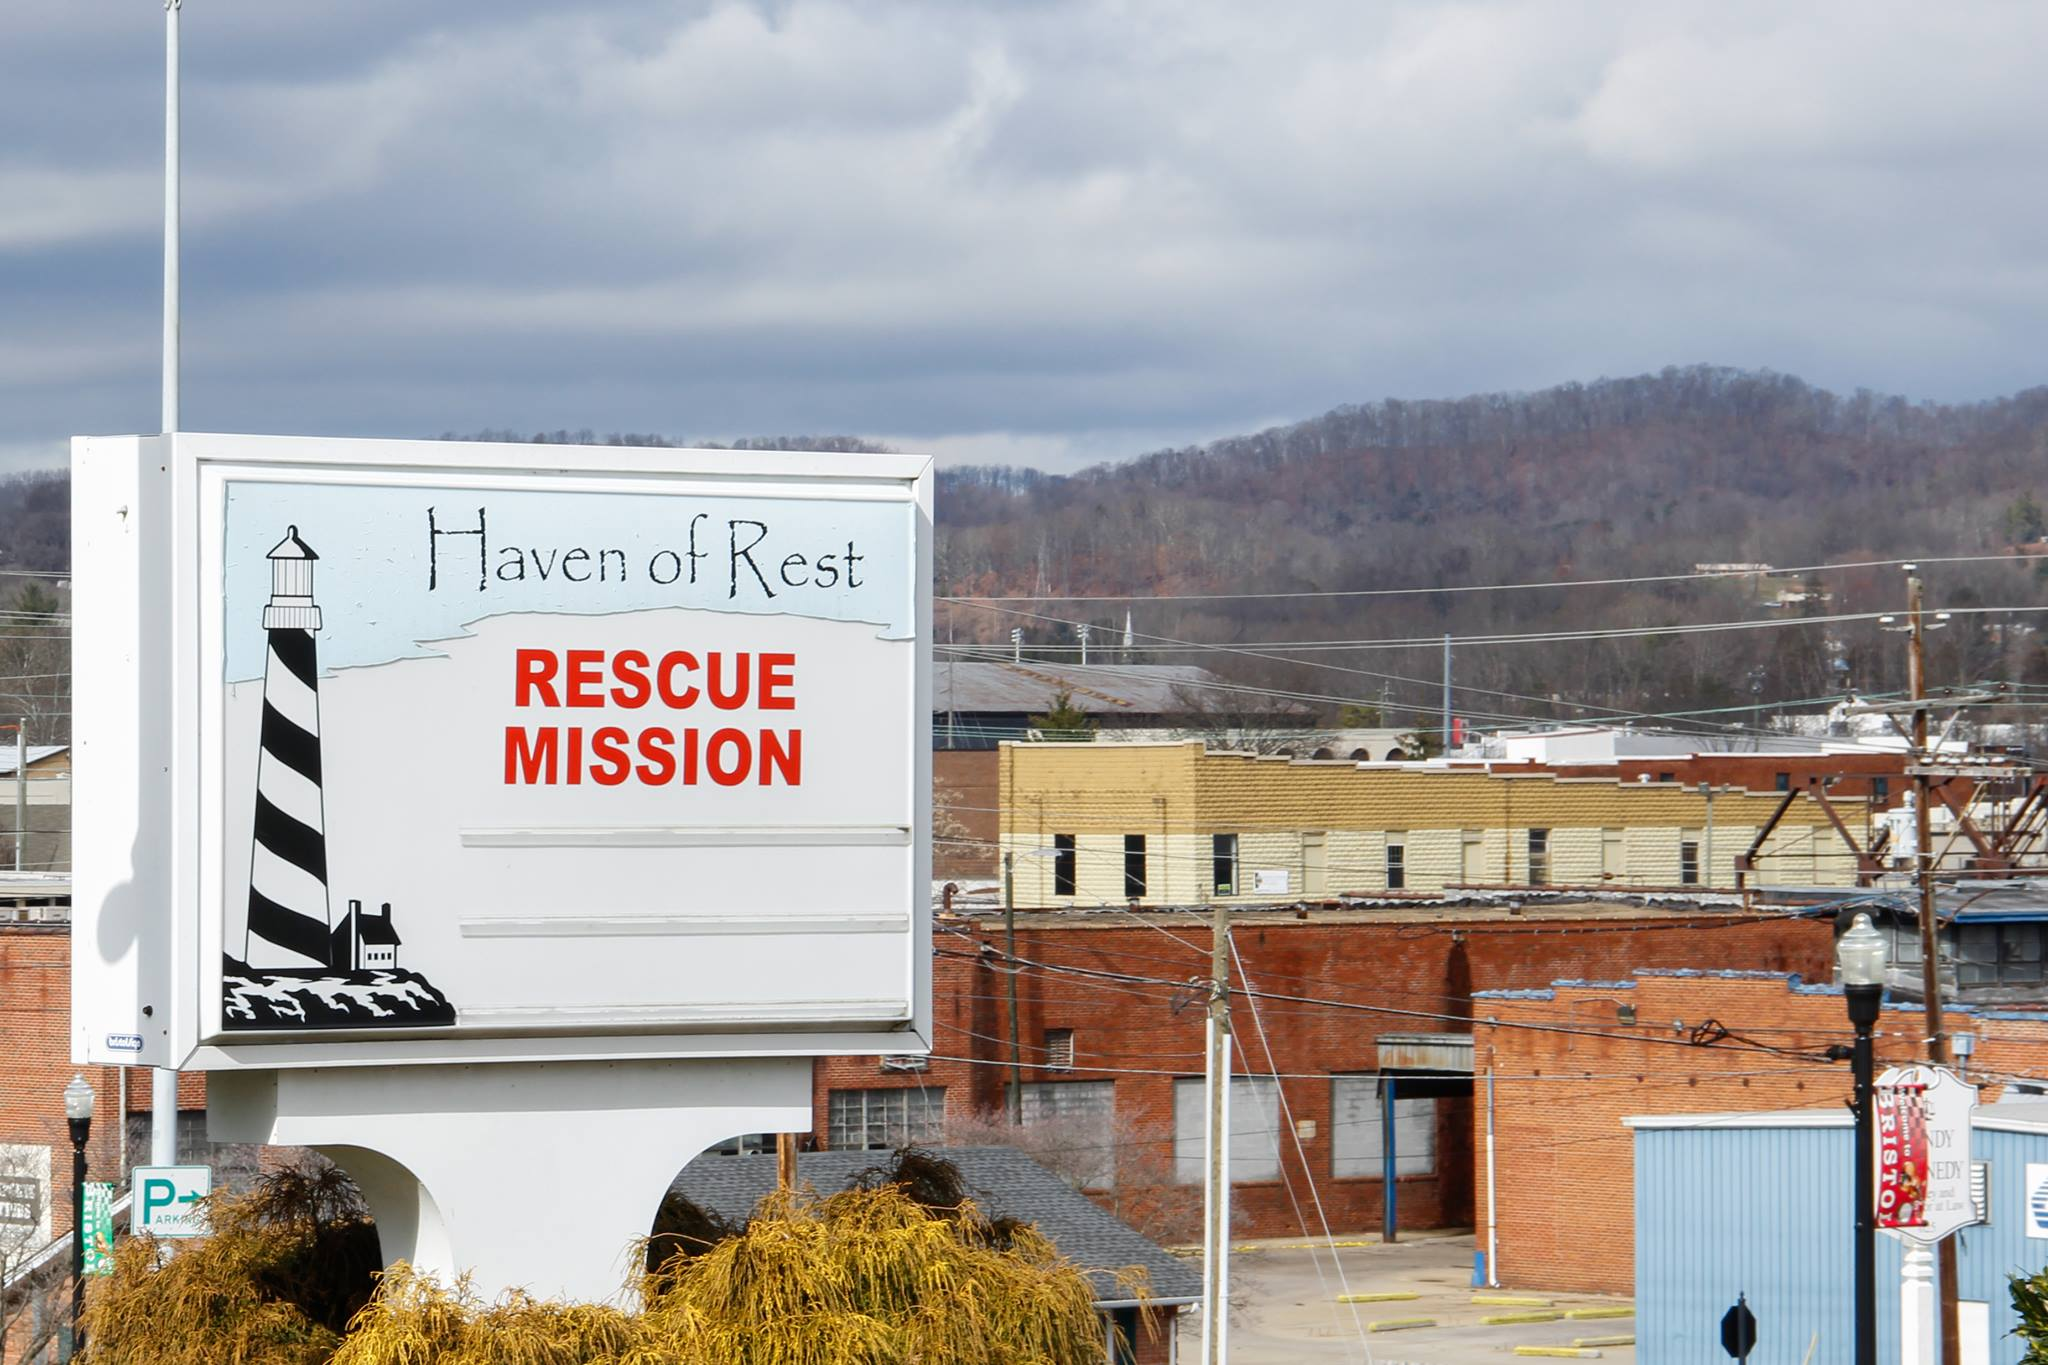 Haven of Rest Rescue Mission